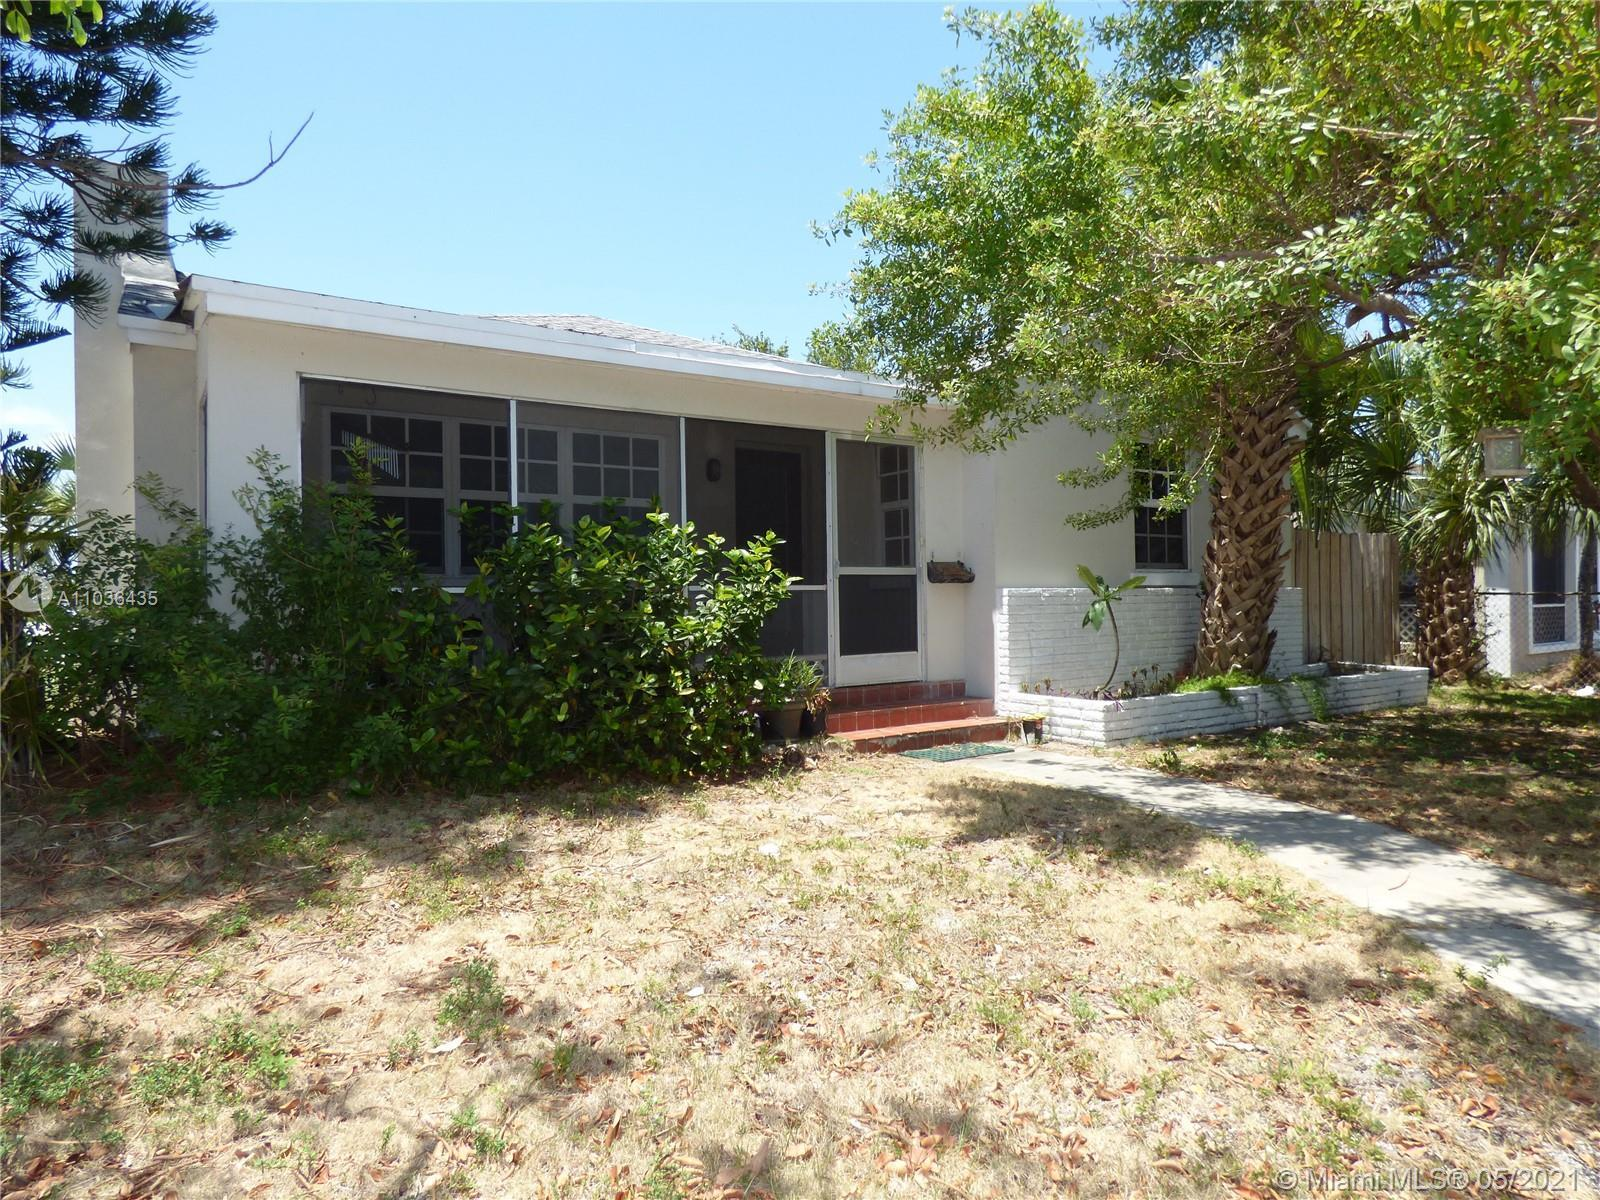 This property is situated on a corner lot and consists of 3 Full Bedrooms and 2 Full Baths along wit